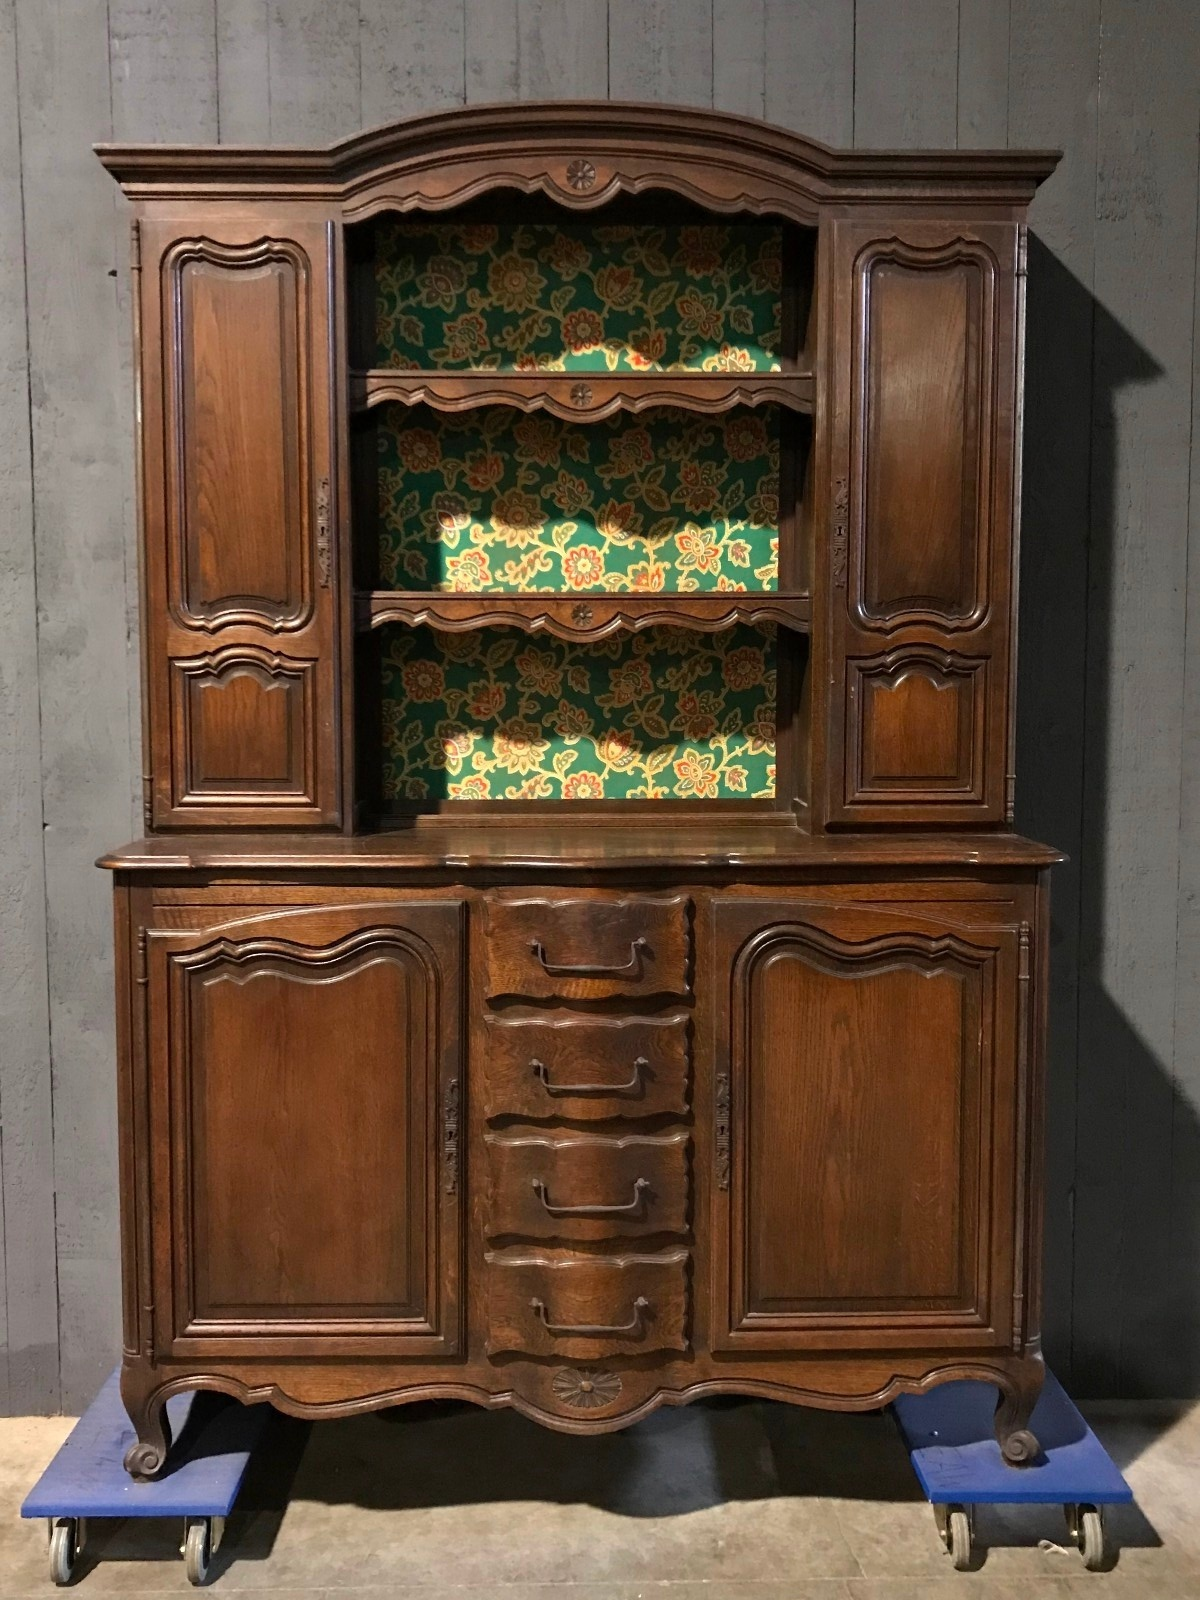 Louis XV Antique cupboard - Louis XV Antique Cupboard - Antiques & Furnitures - Recent Added